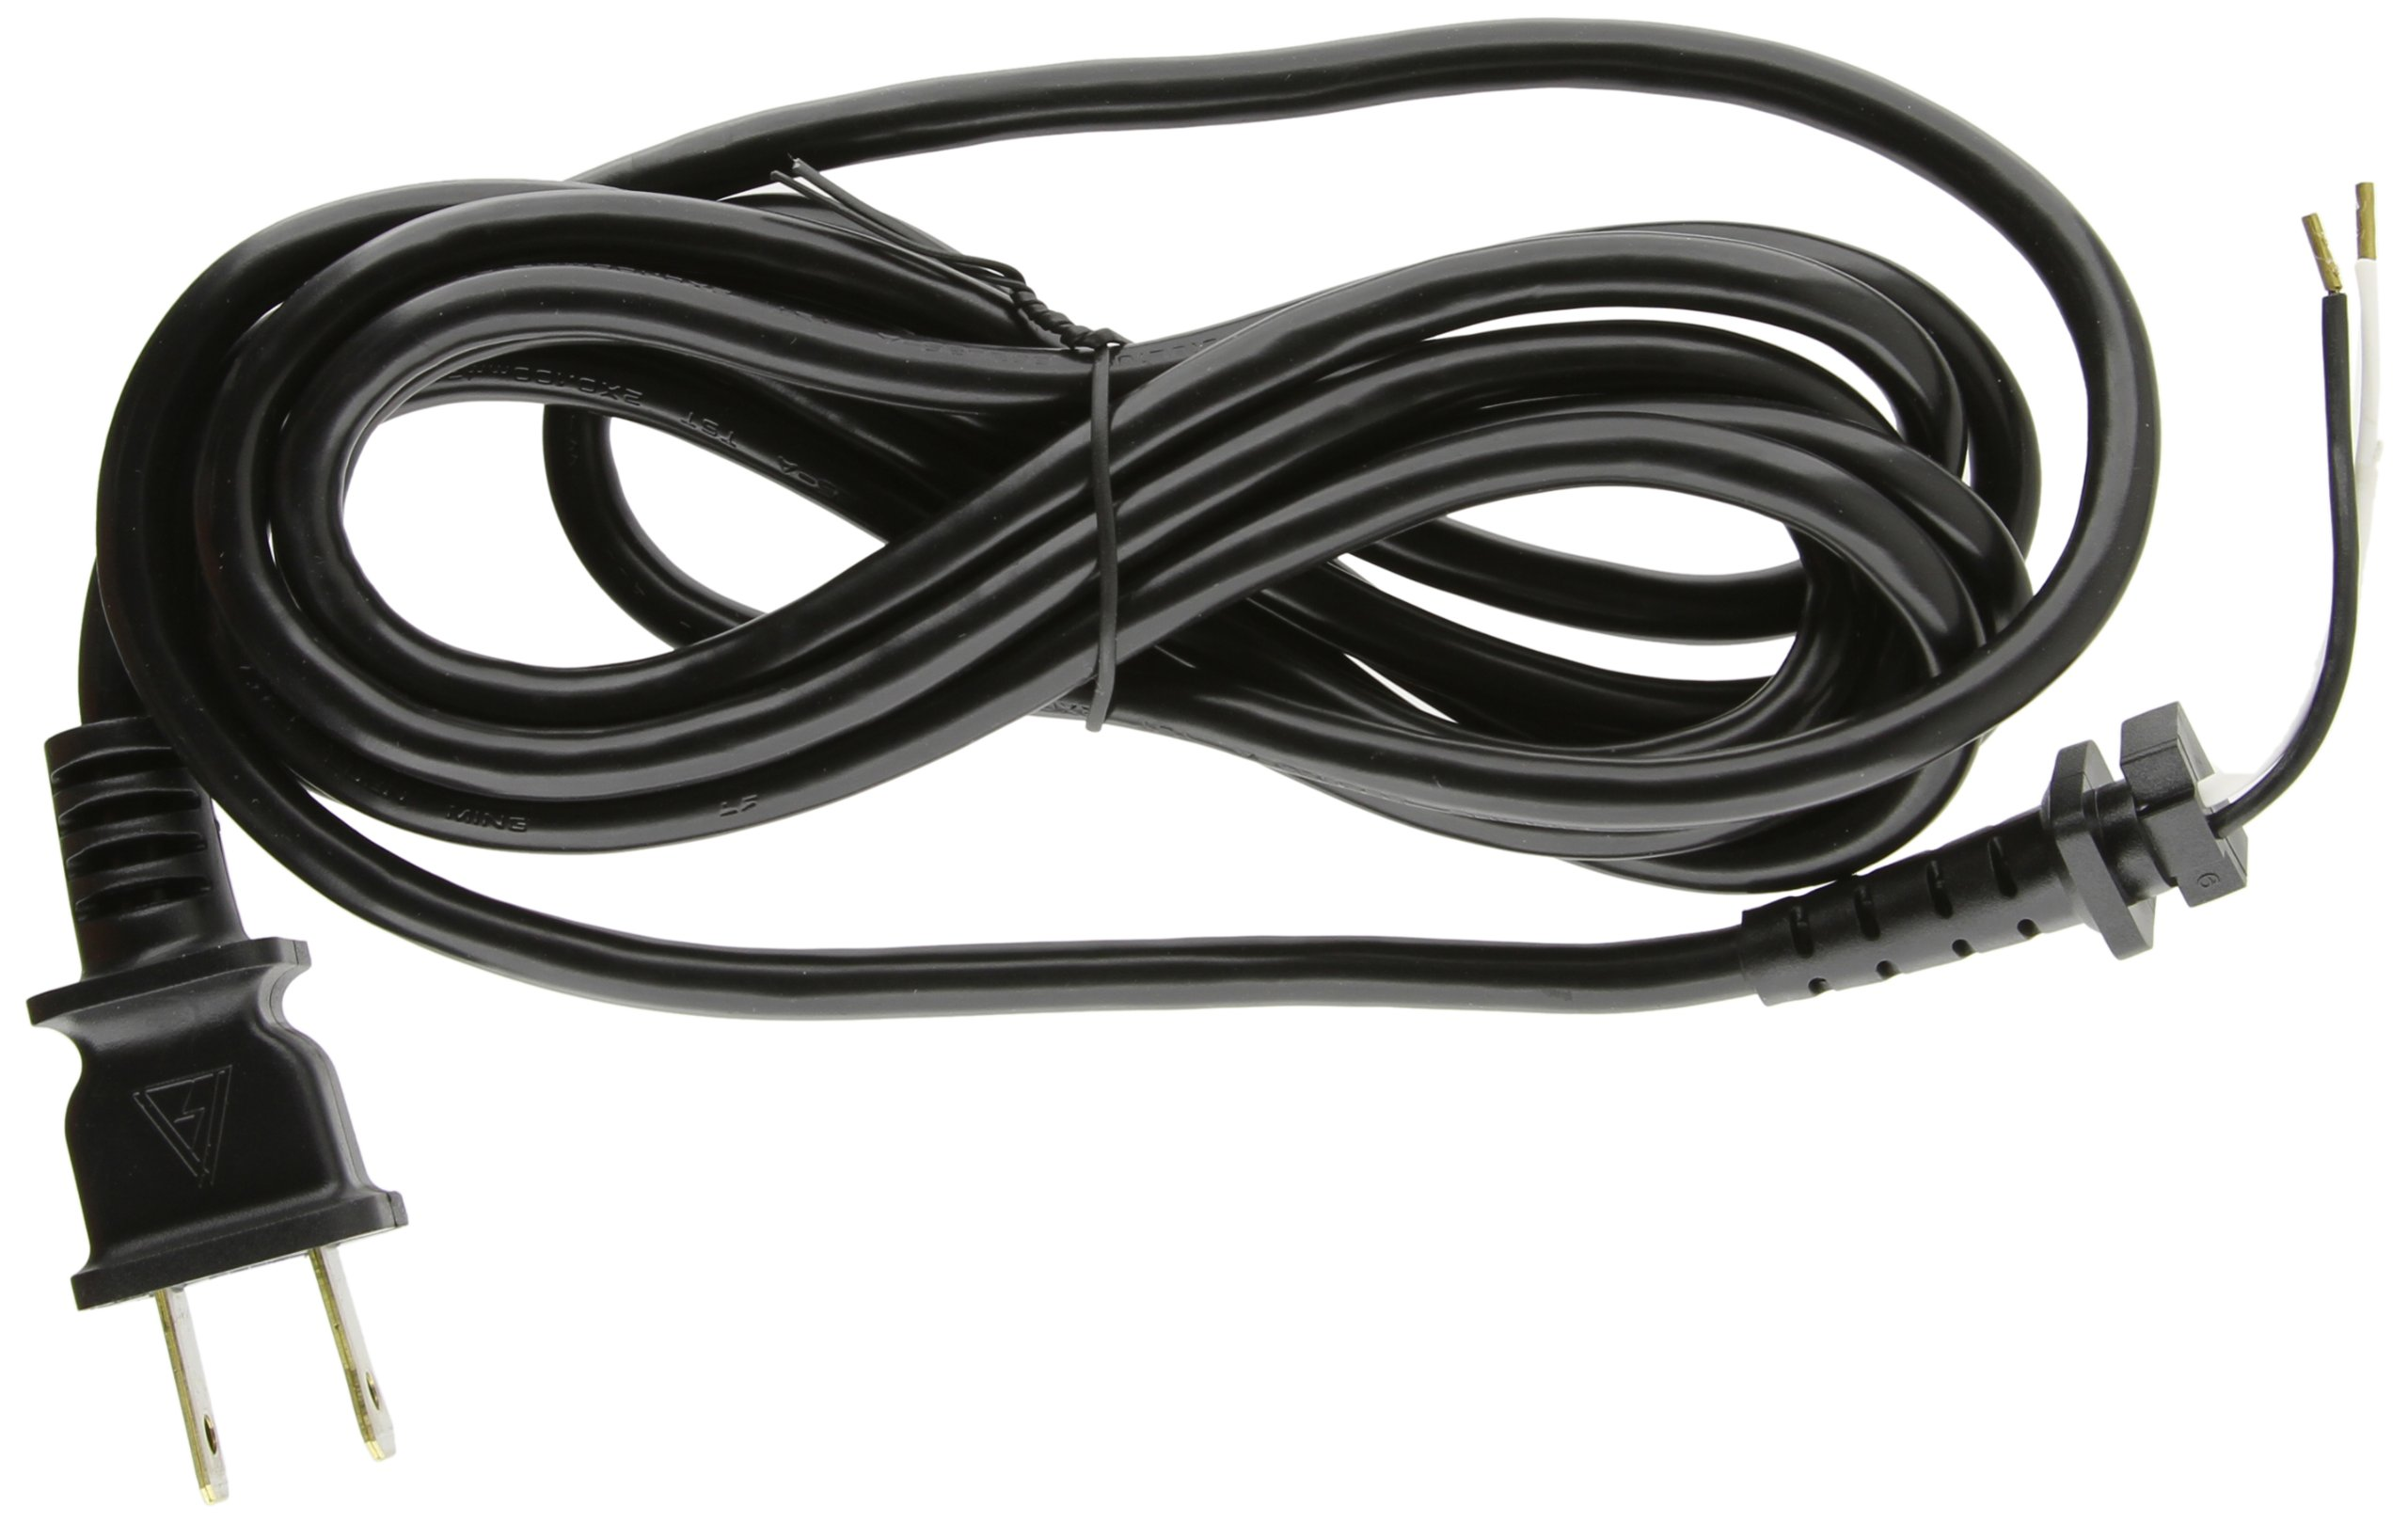 Andis 26049 Power Cord for Styliner Trimmer